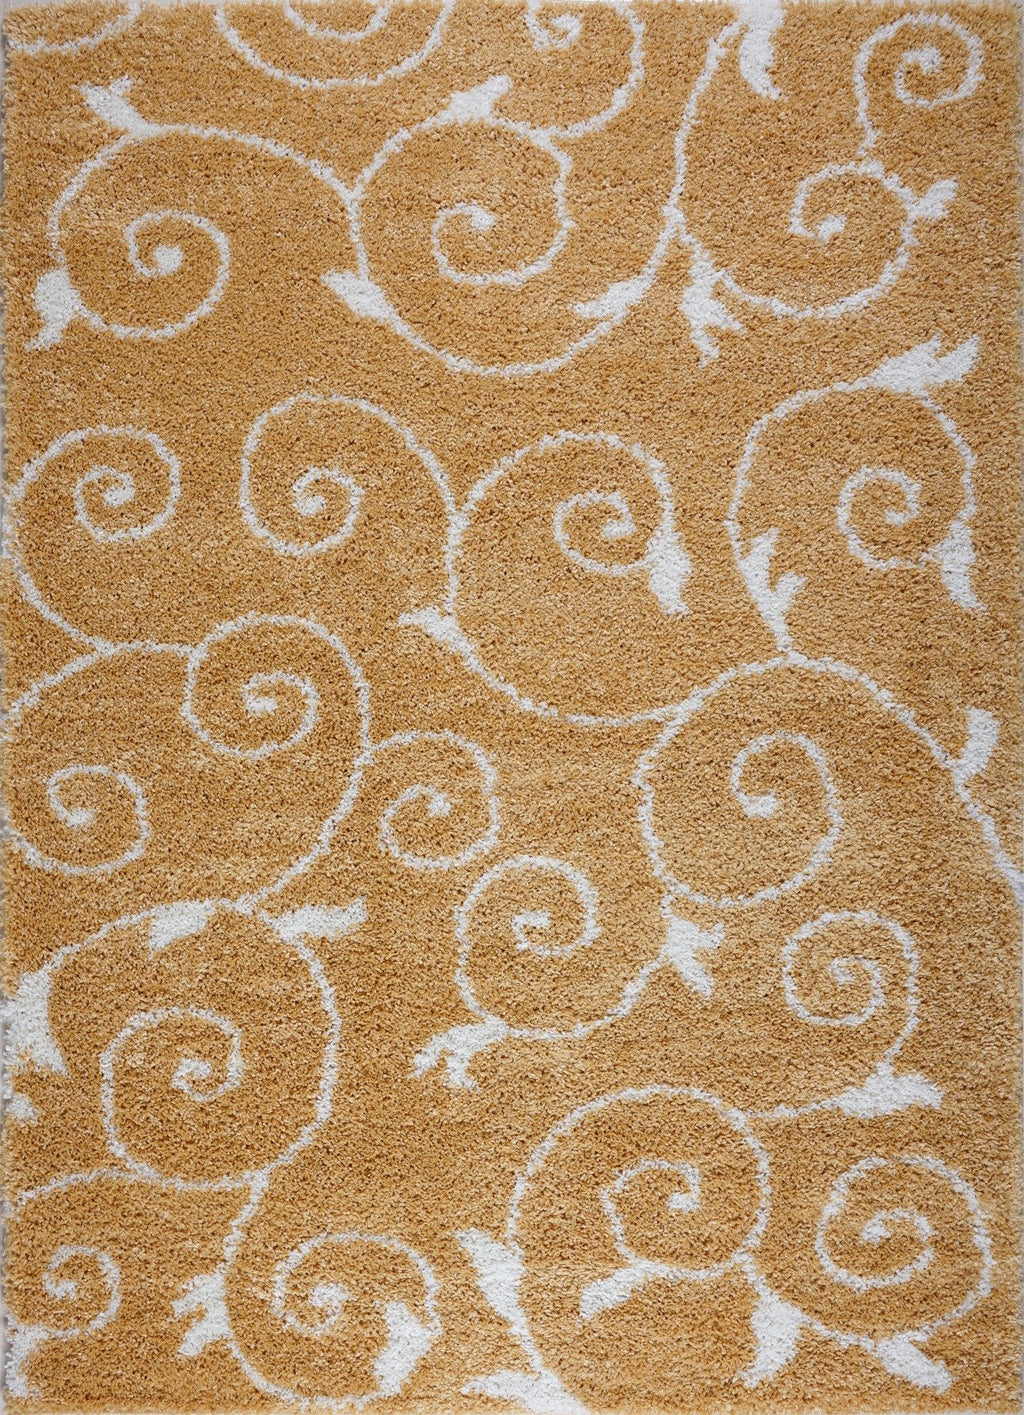 Shaggy Rabat Abstract Pattern Sustainable Spirals Style Indoor Rug in Dark Yellow White